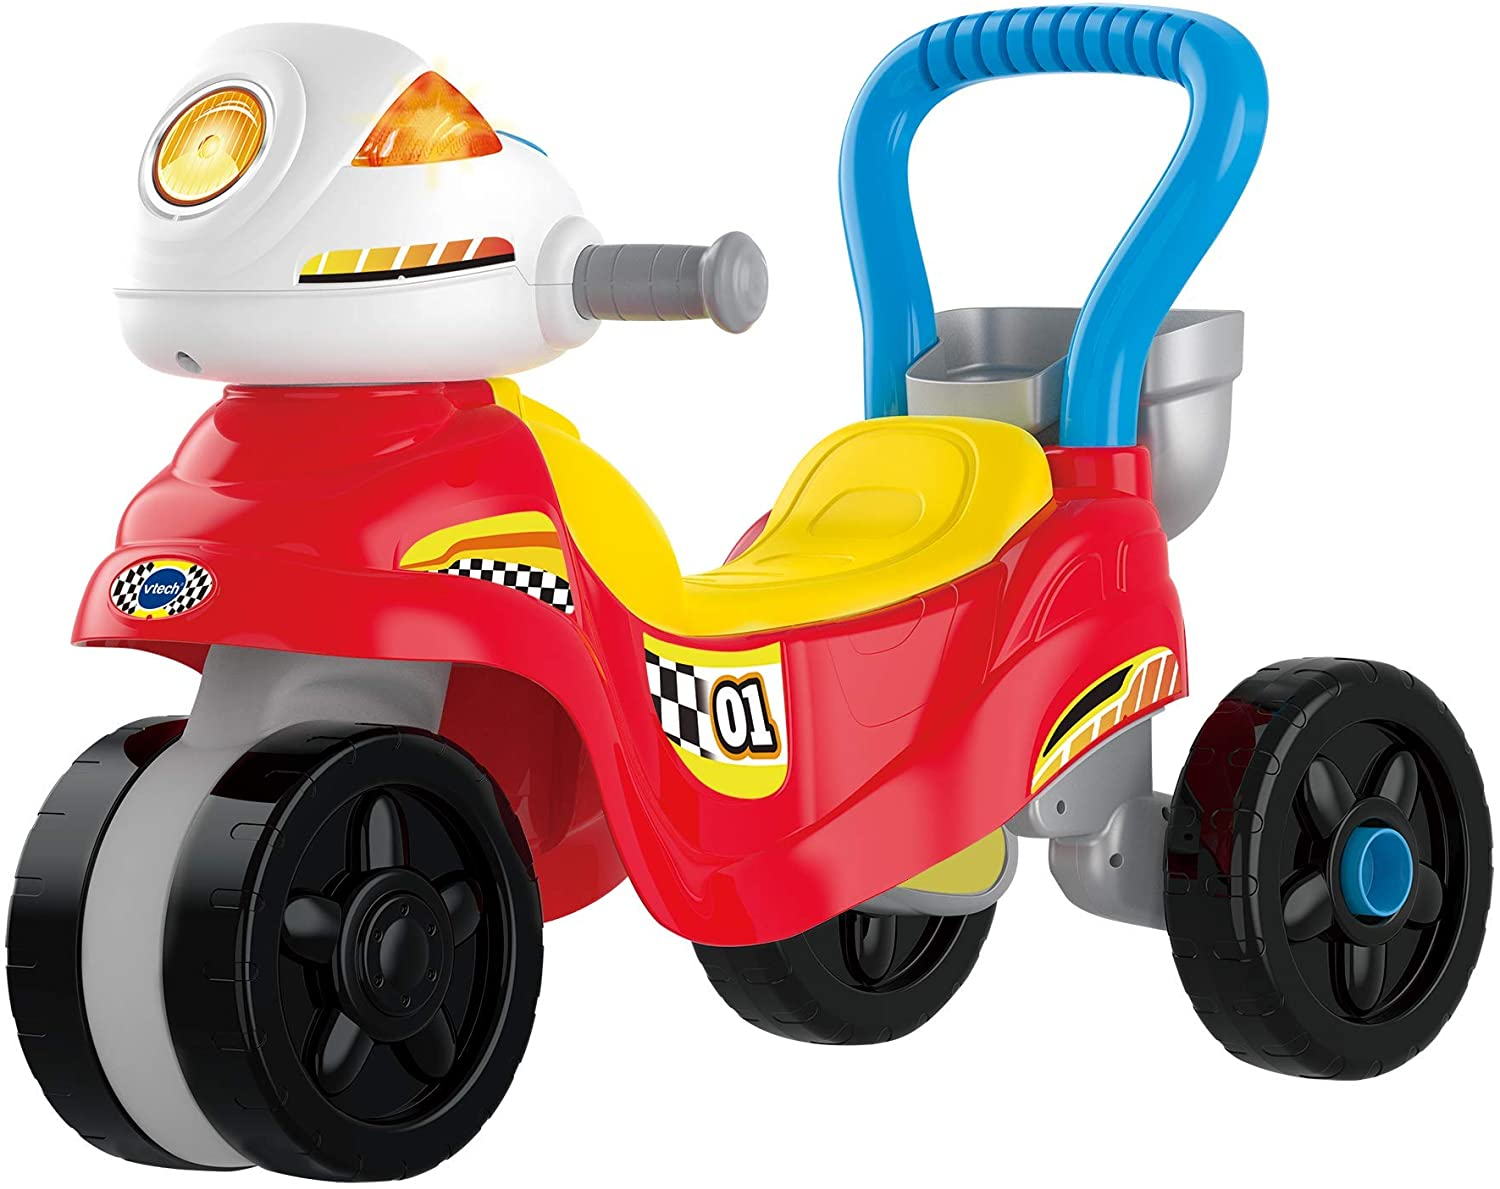 VTech 3-In-1 Ride With Me Motorbike - Red